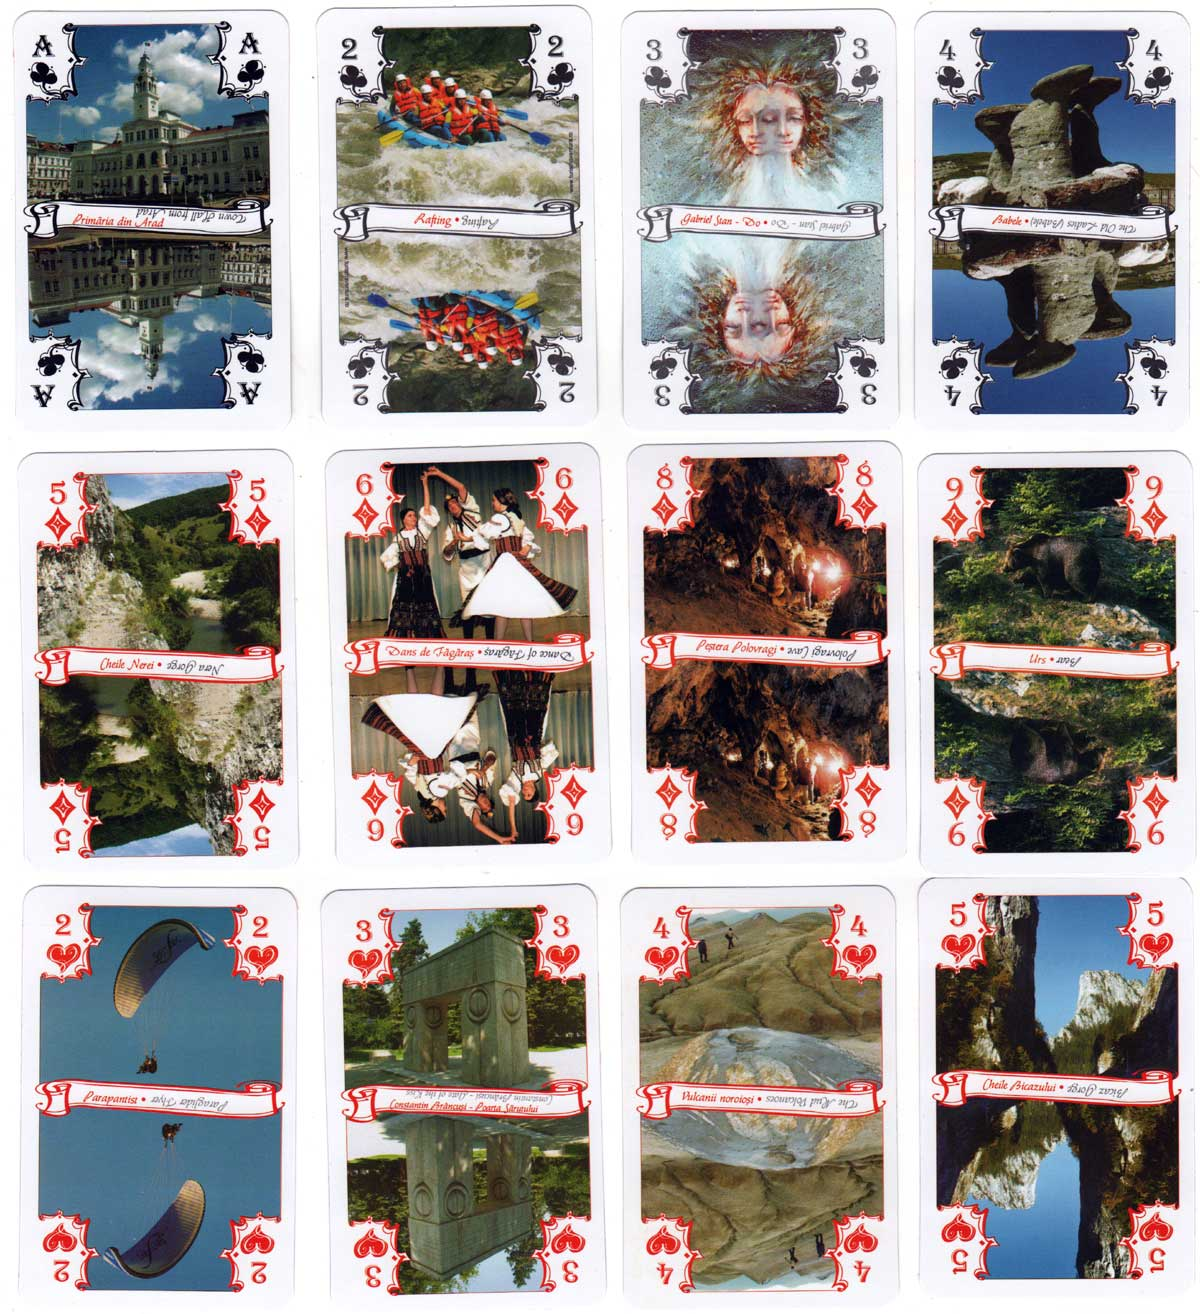 Discover Romania souvenir playing cards published by Editura Foton, 2010